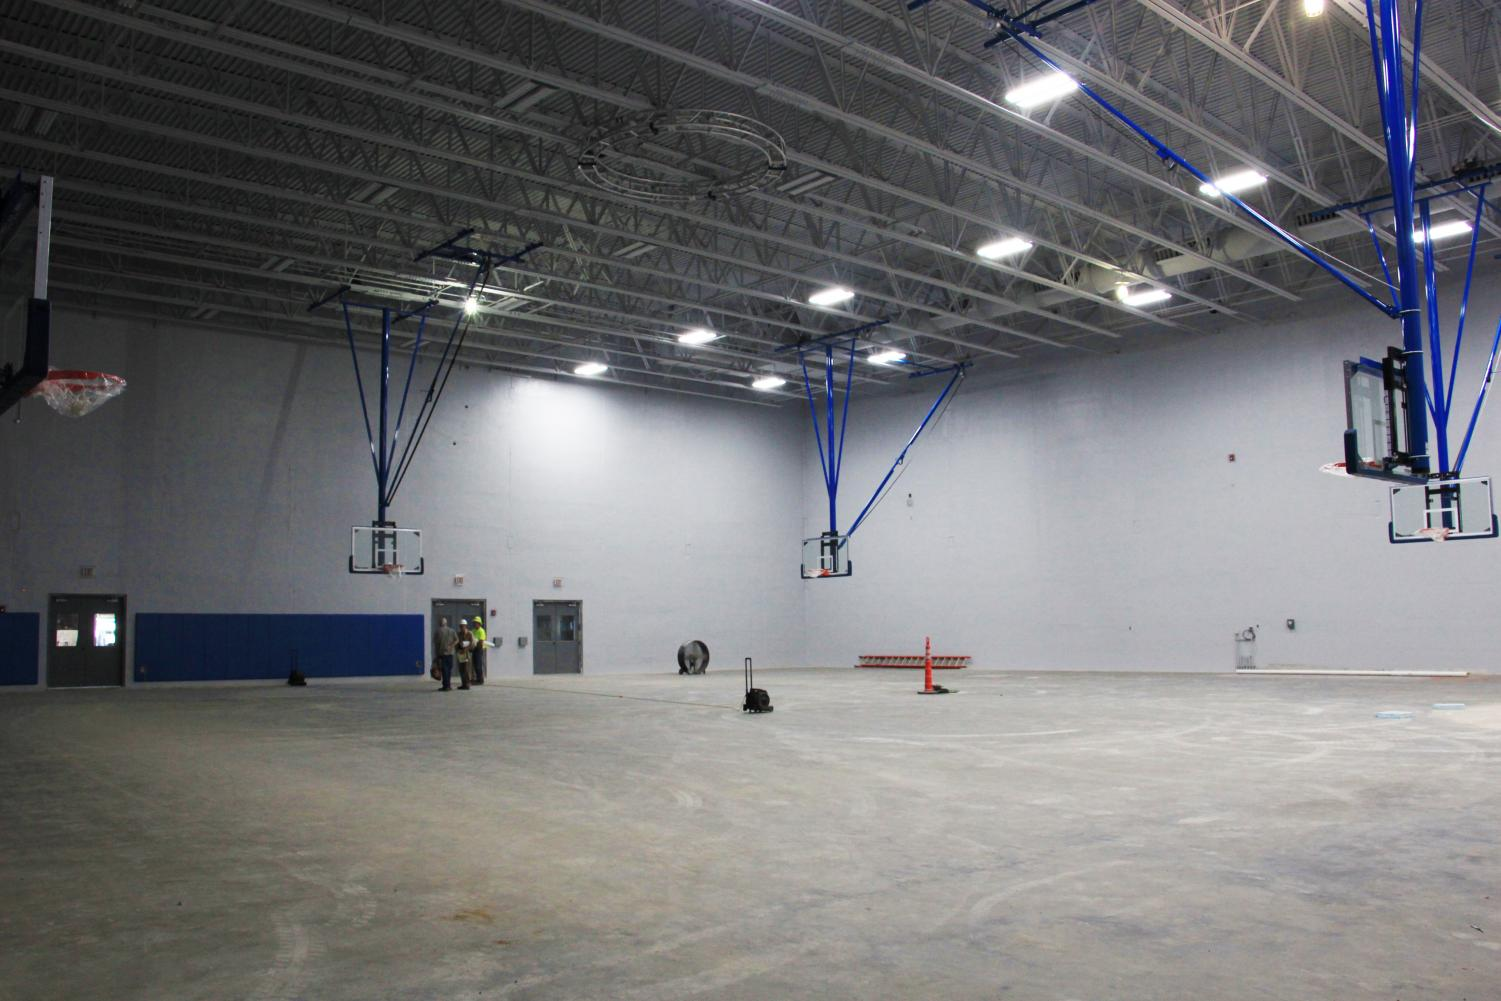 ALMOST DONE: The new gym sits empty, awaiting its final touches. The project's estimated completion date is currently set for November.